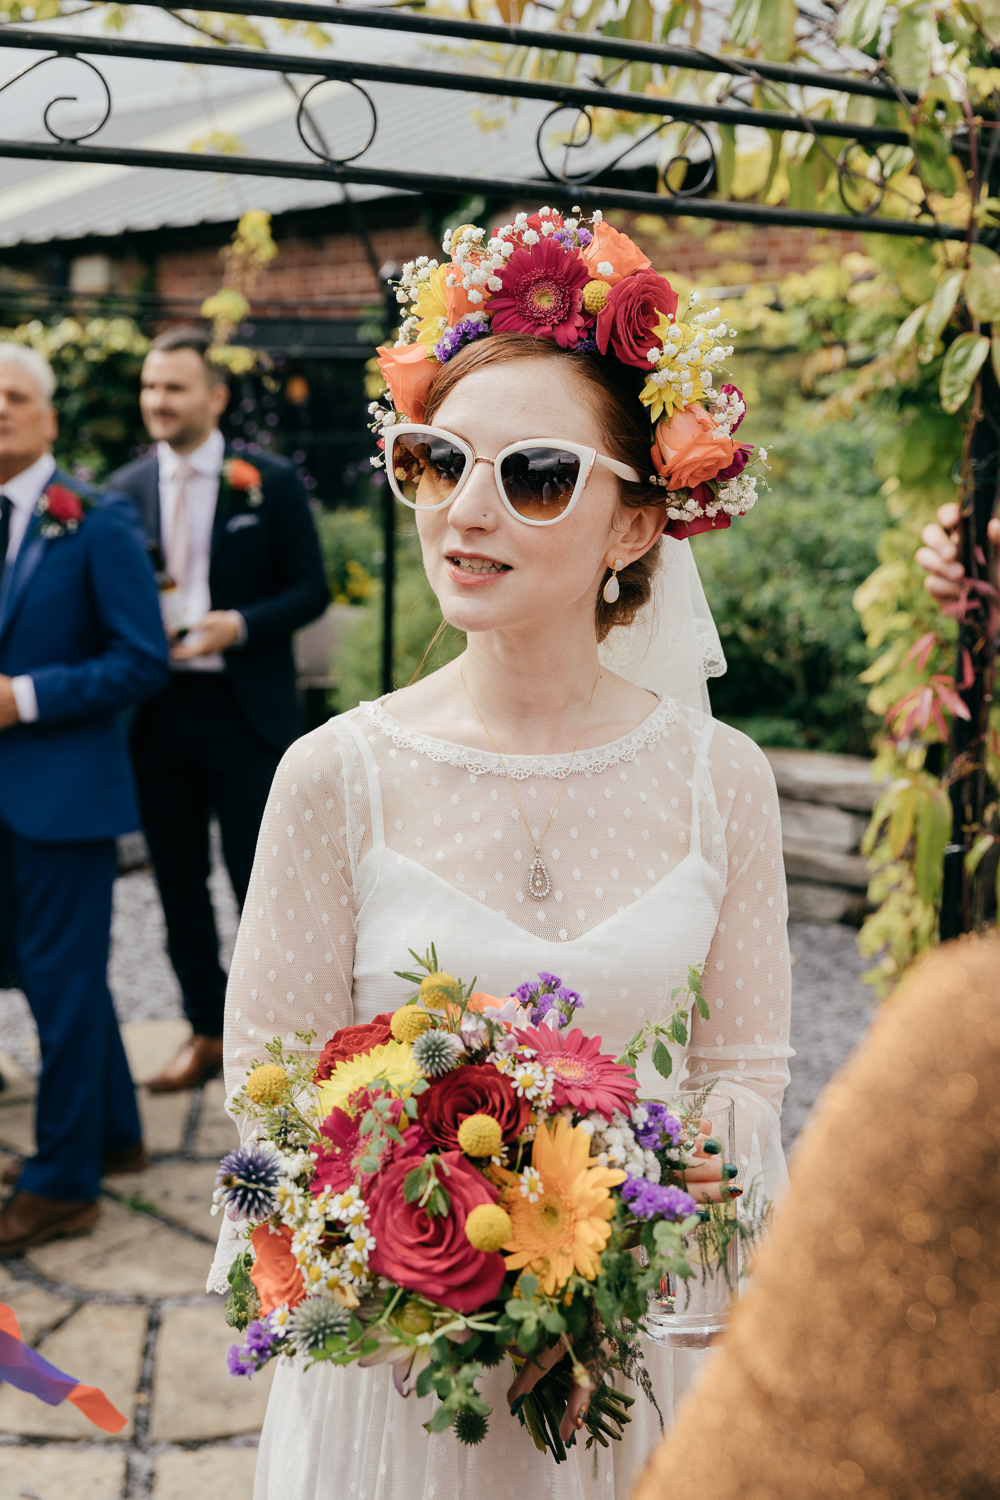 candid portrait of bride with quirky vintage style